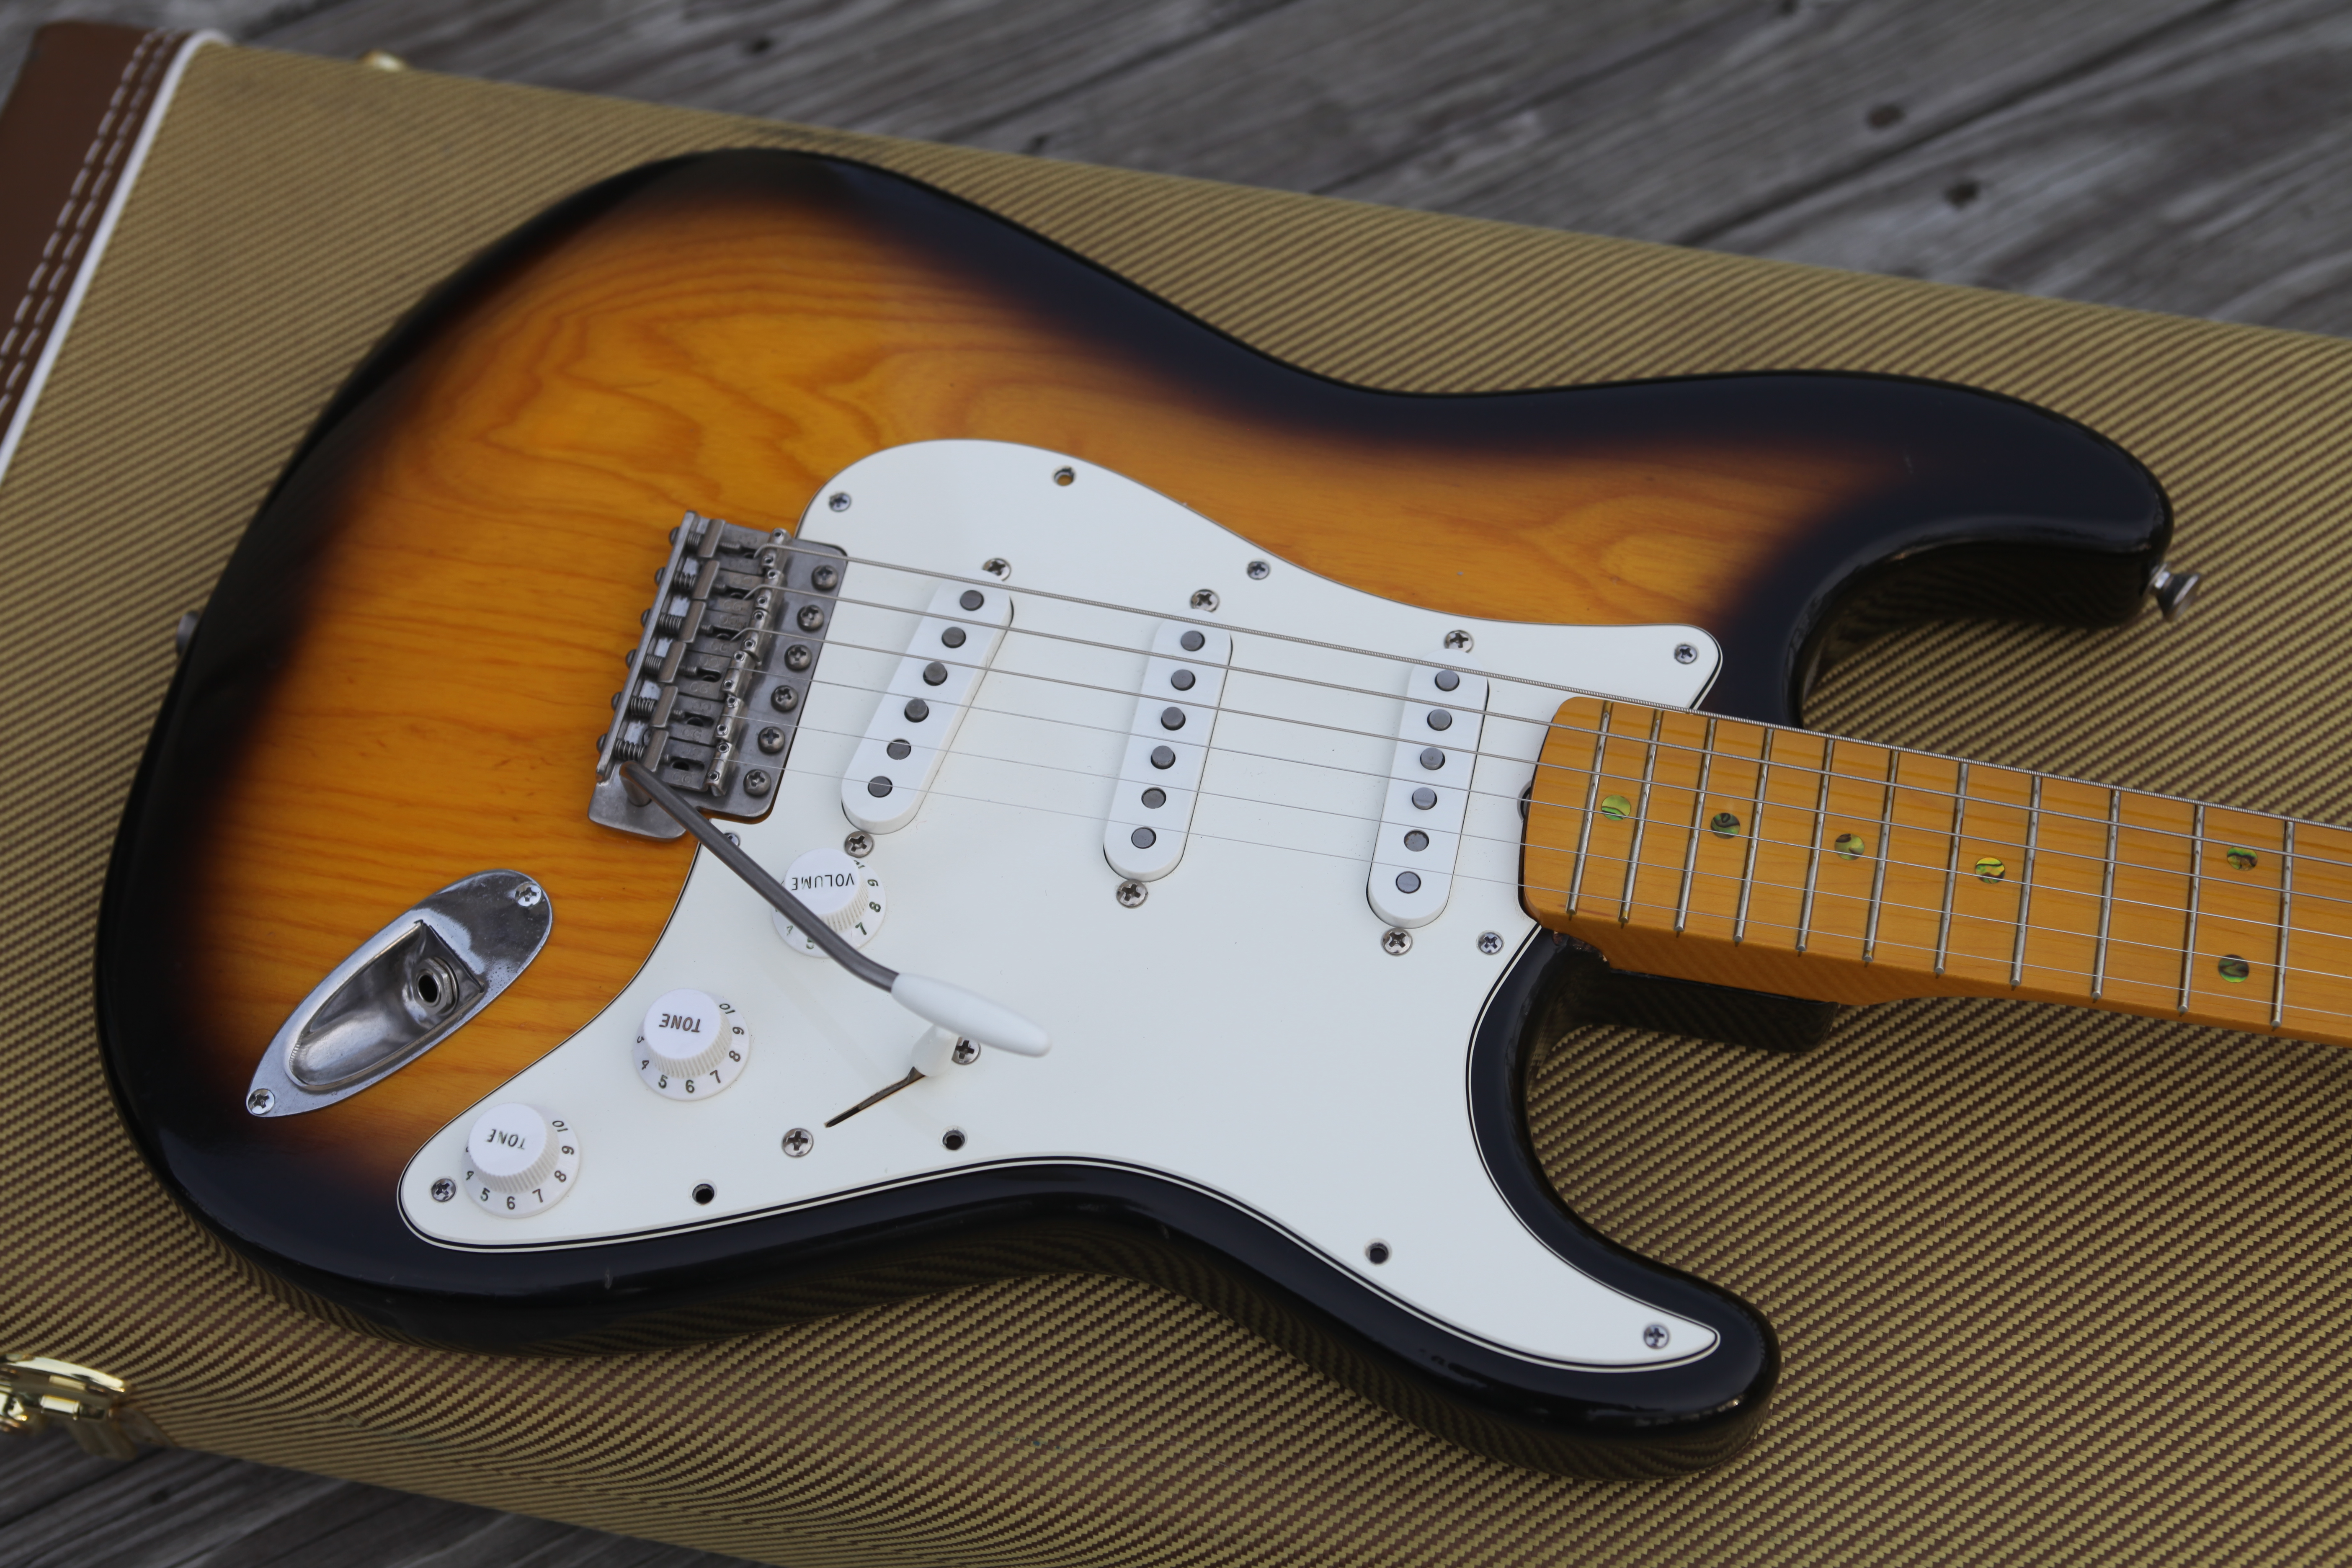 FS: 1994 Fender Stratocaster AVRI \'57 RI body sunburst, Ant1 for P ...